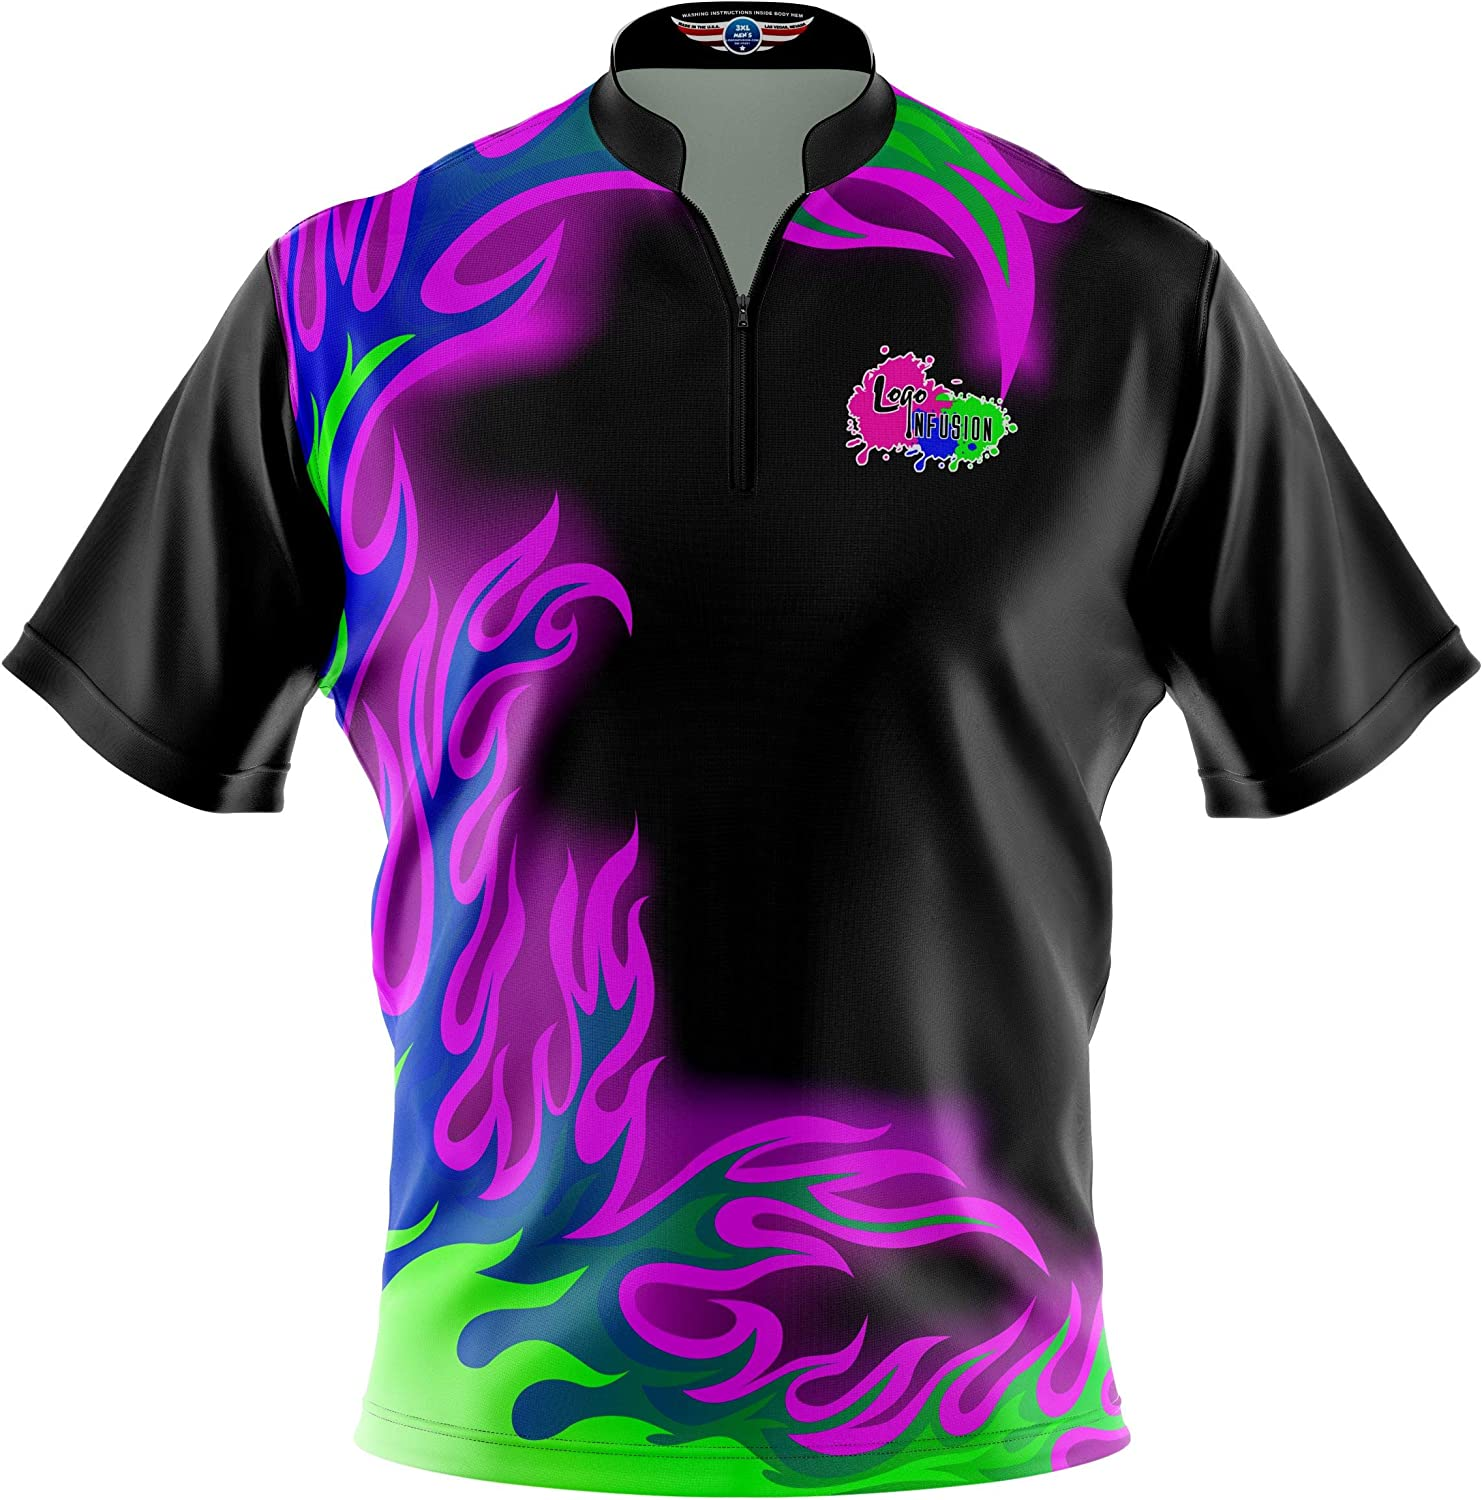 1 year warranty Logo Infusion Bowling Dye-Sublimated Sash Jersey Brand new Collar -